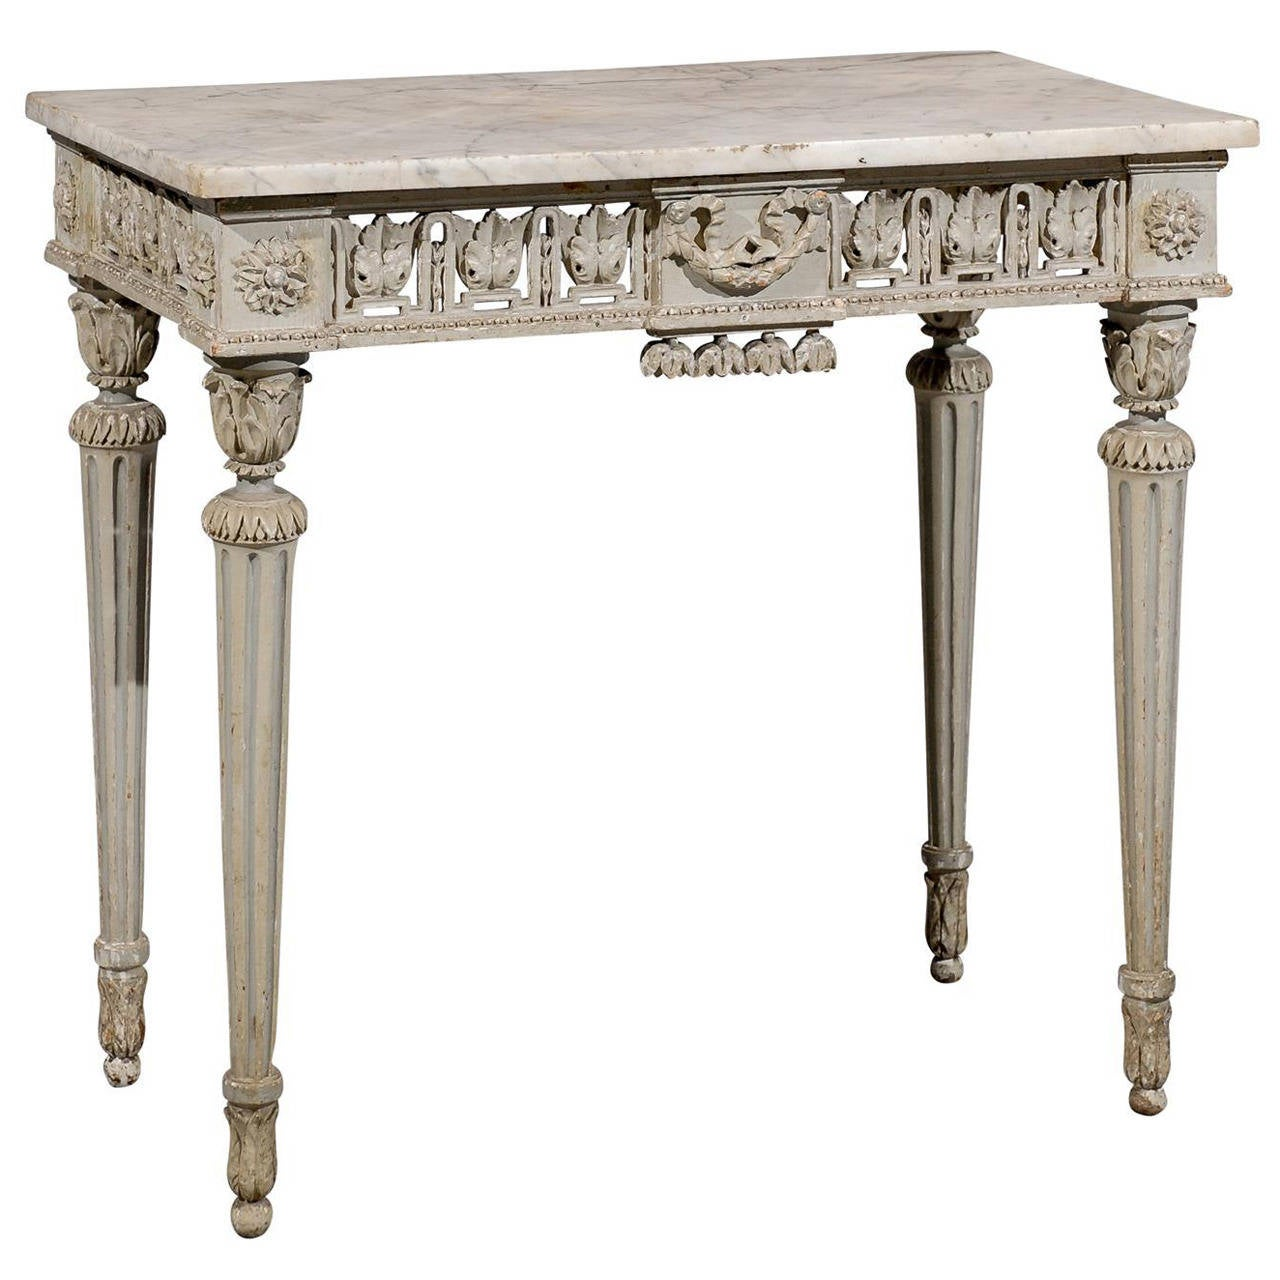 18th century french louis xvi painted console table with marble 18th century french louis xvi painted console table with marble top 1 geotapseo Image collections